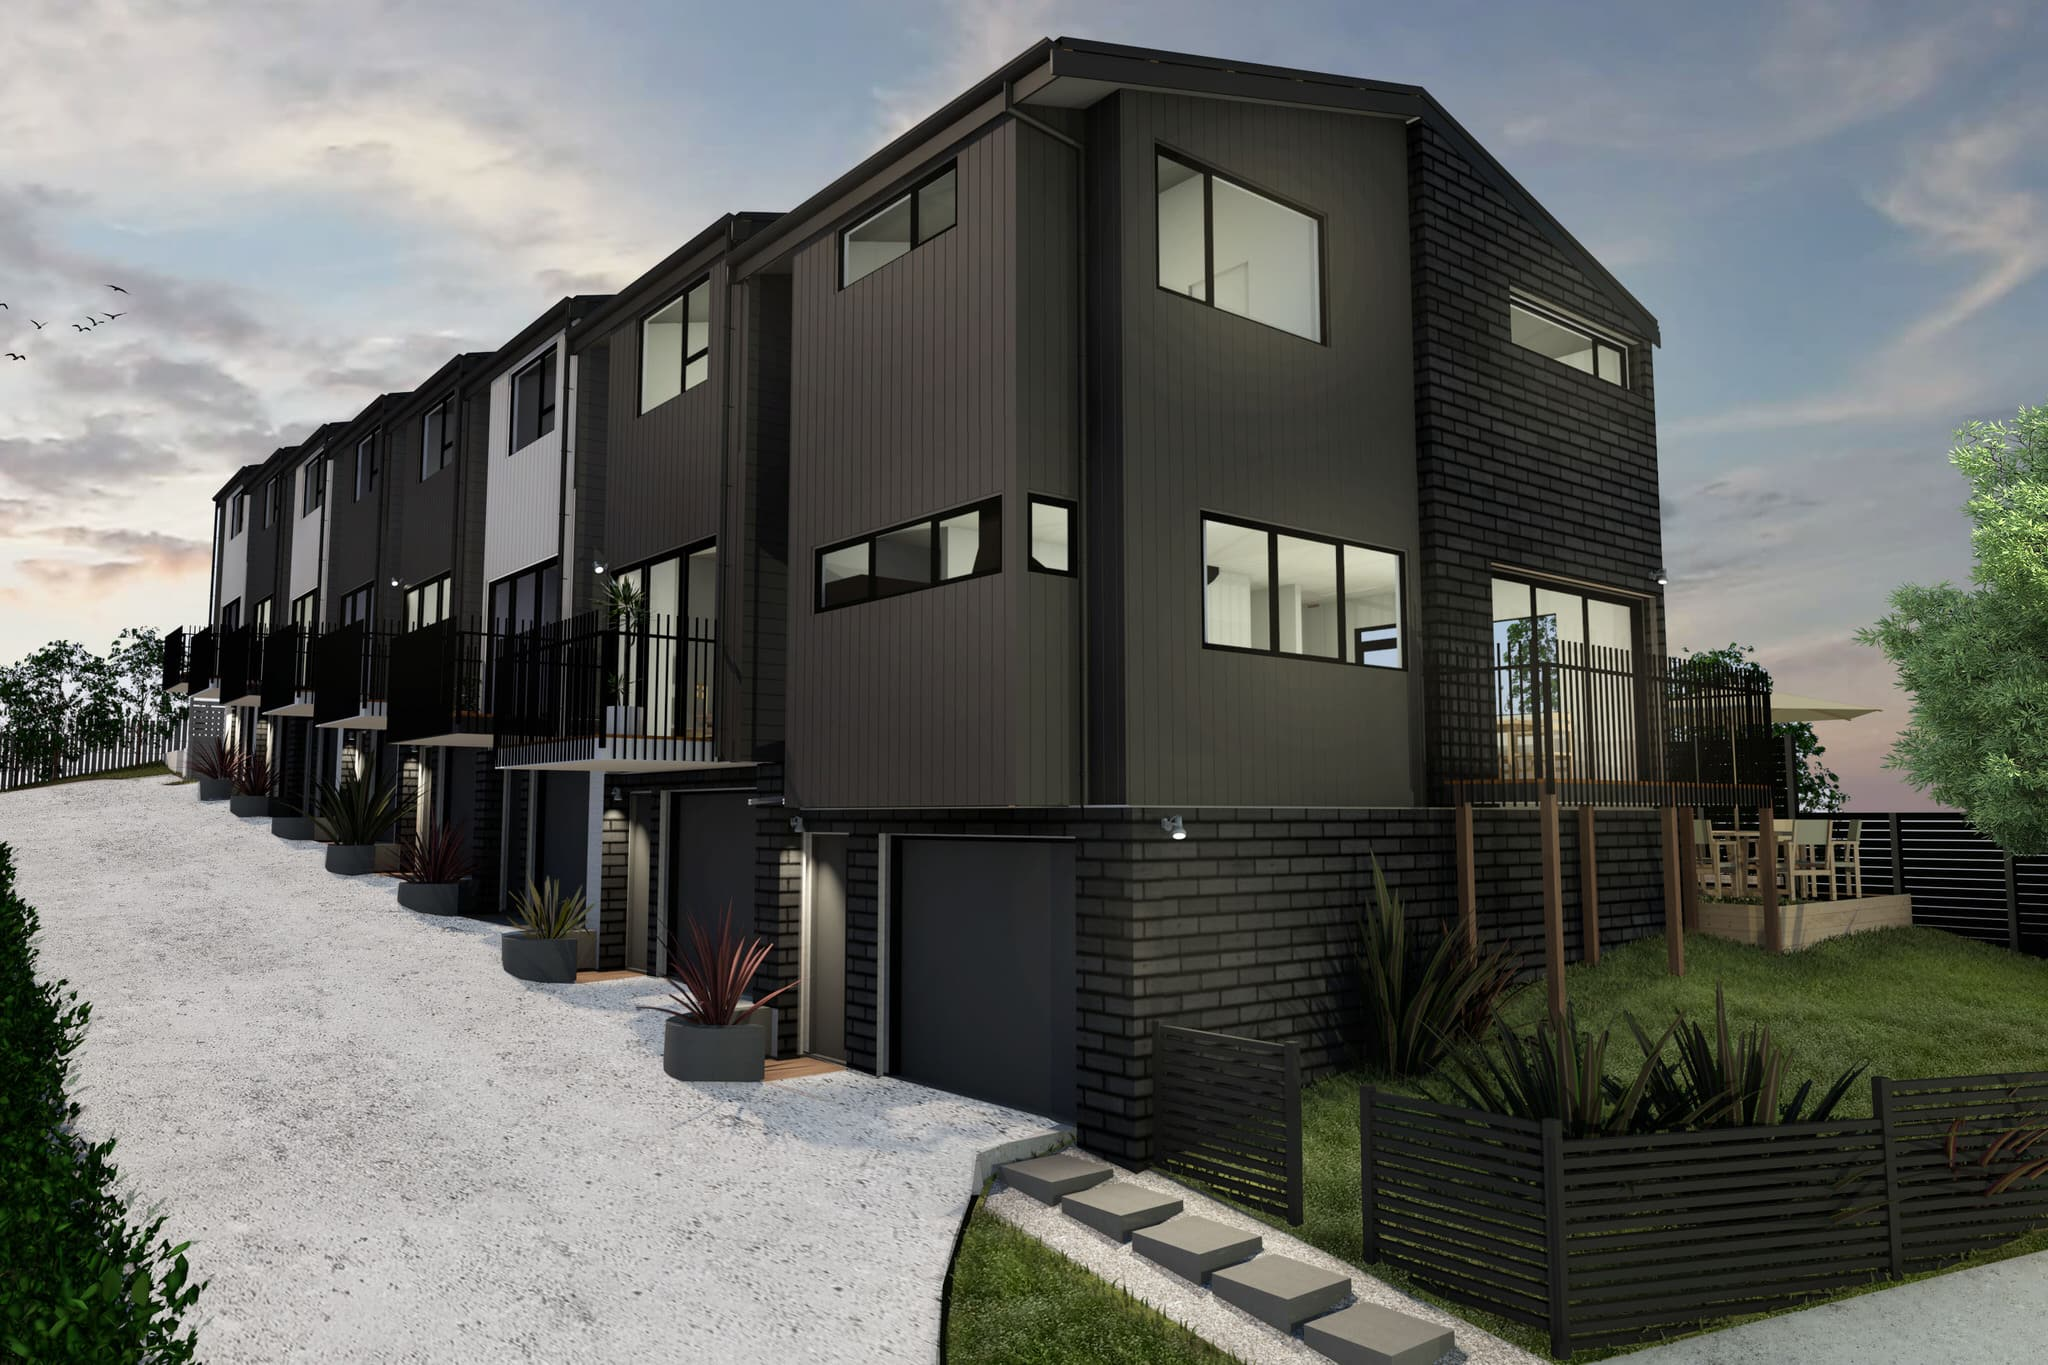 Glendowie Terraced Housing, Auckland